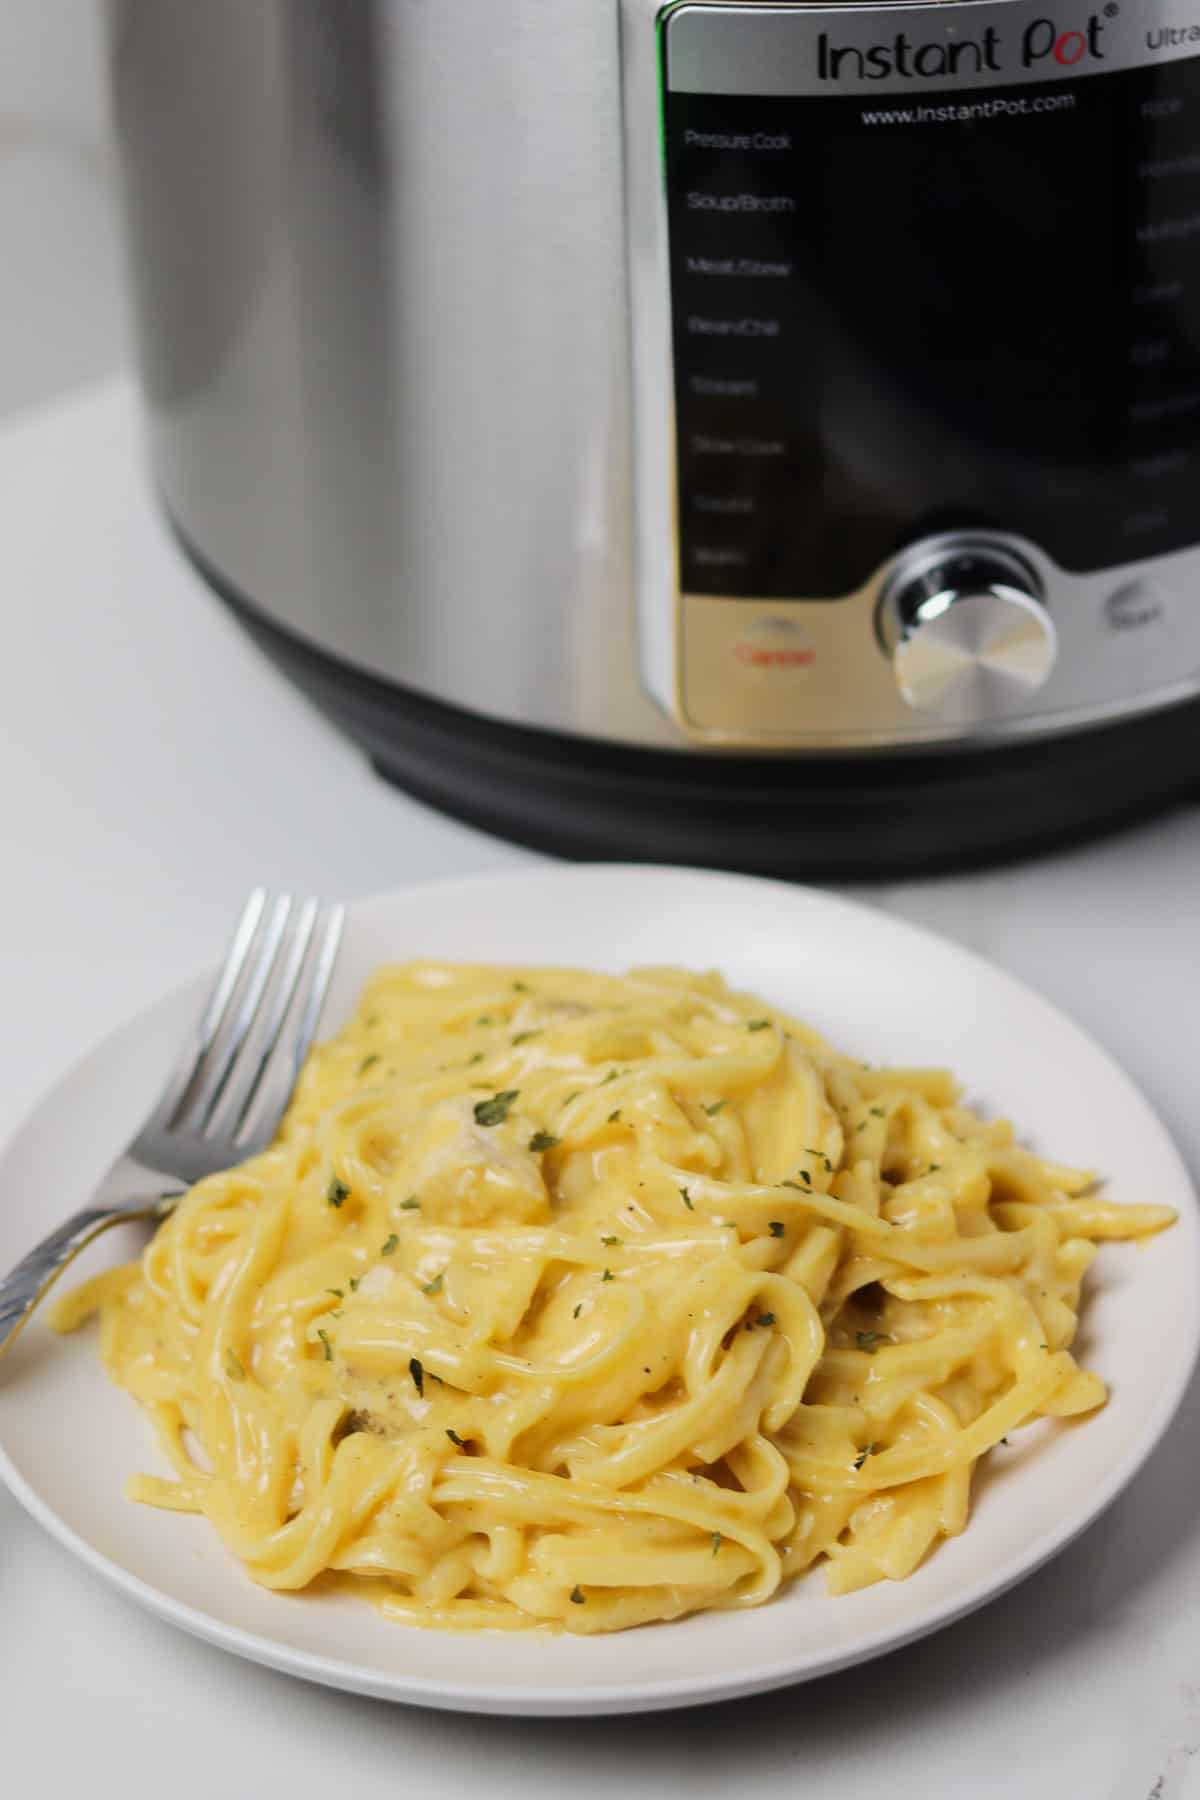 plate of chicken spaghetti in front of the instant pot